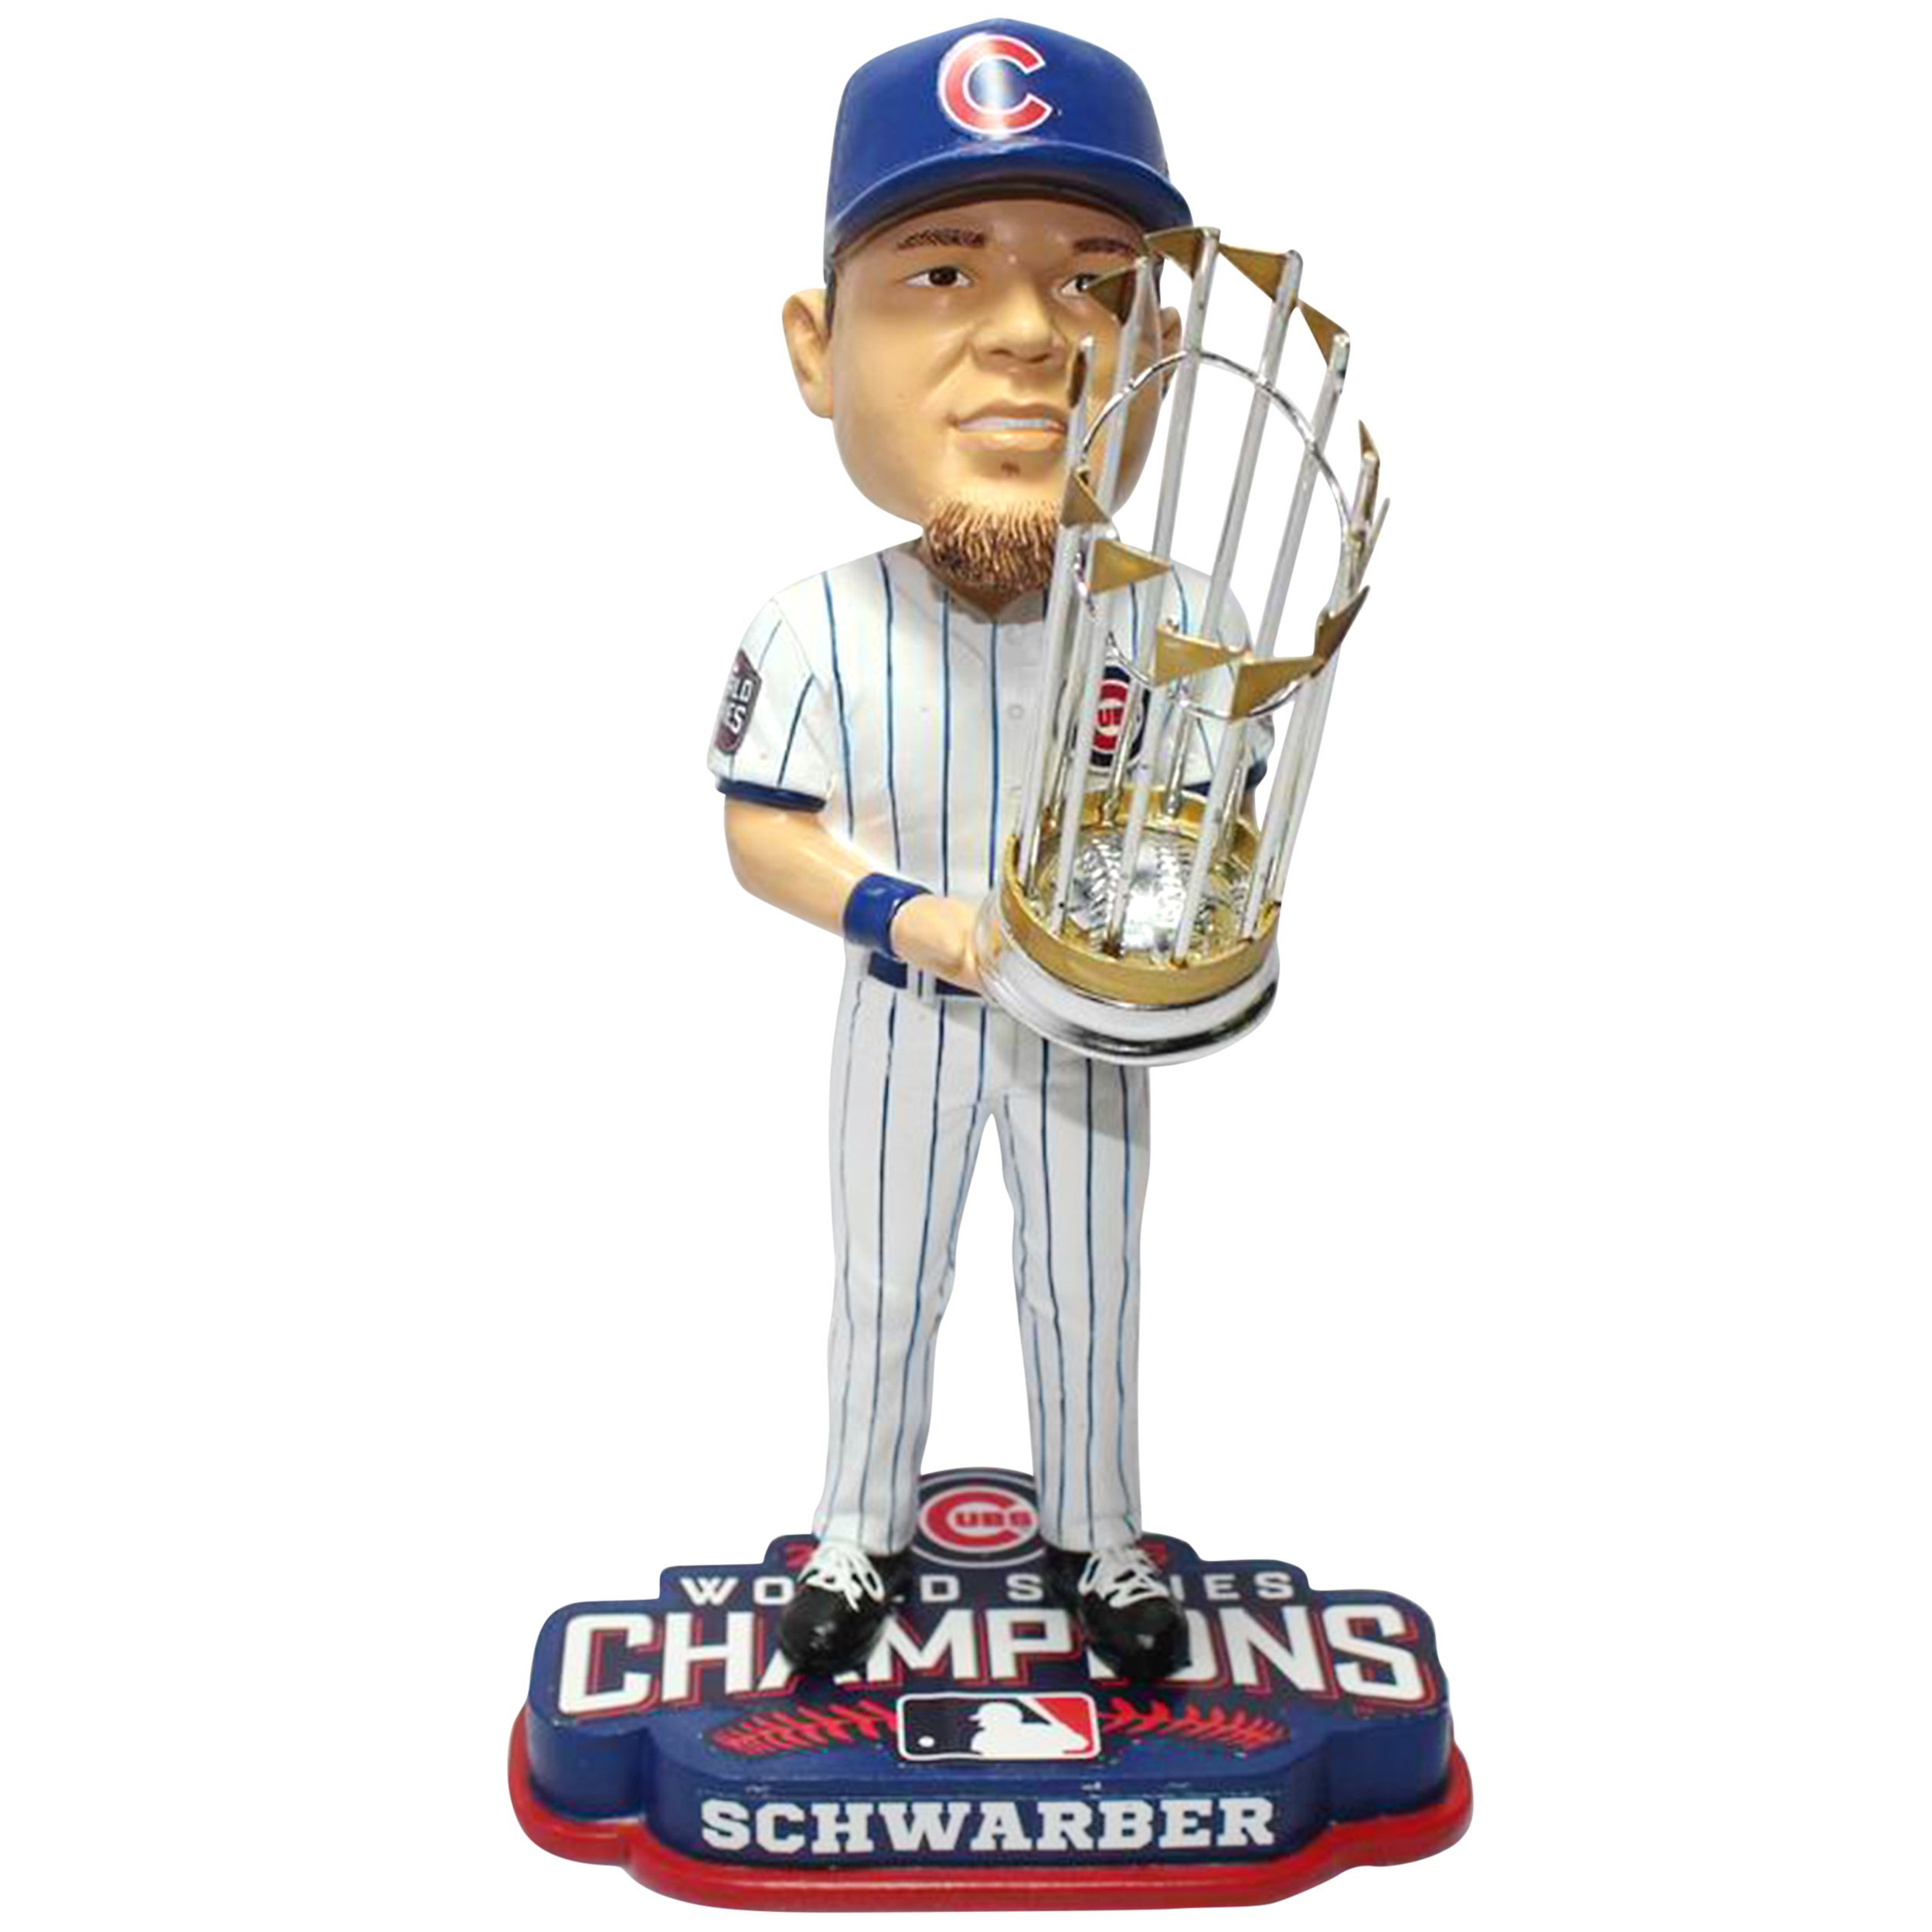 FOCO MLB Chicago Cubs Kyle Schwarber 2016 World Series Champions Bobblehead, White, 8'' by FOCO